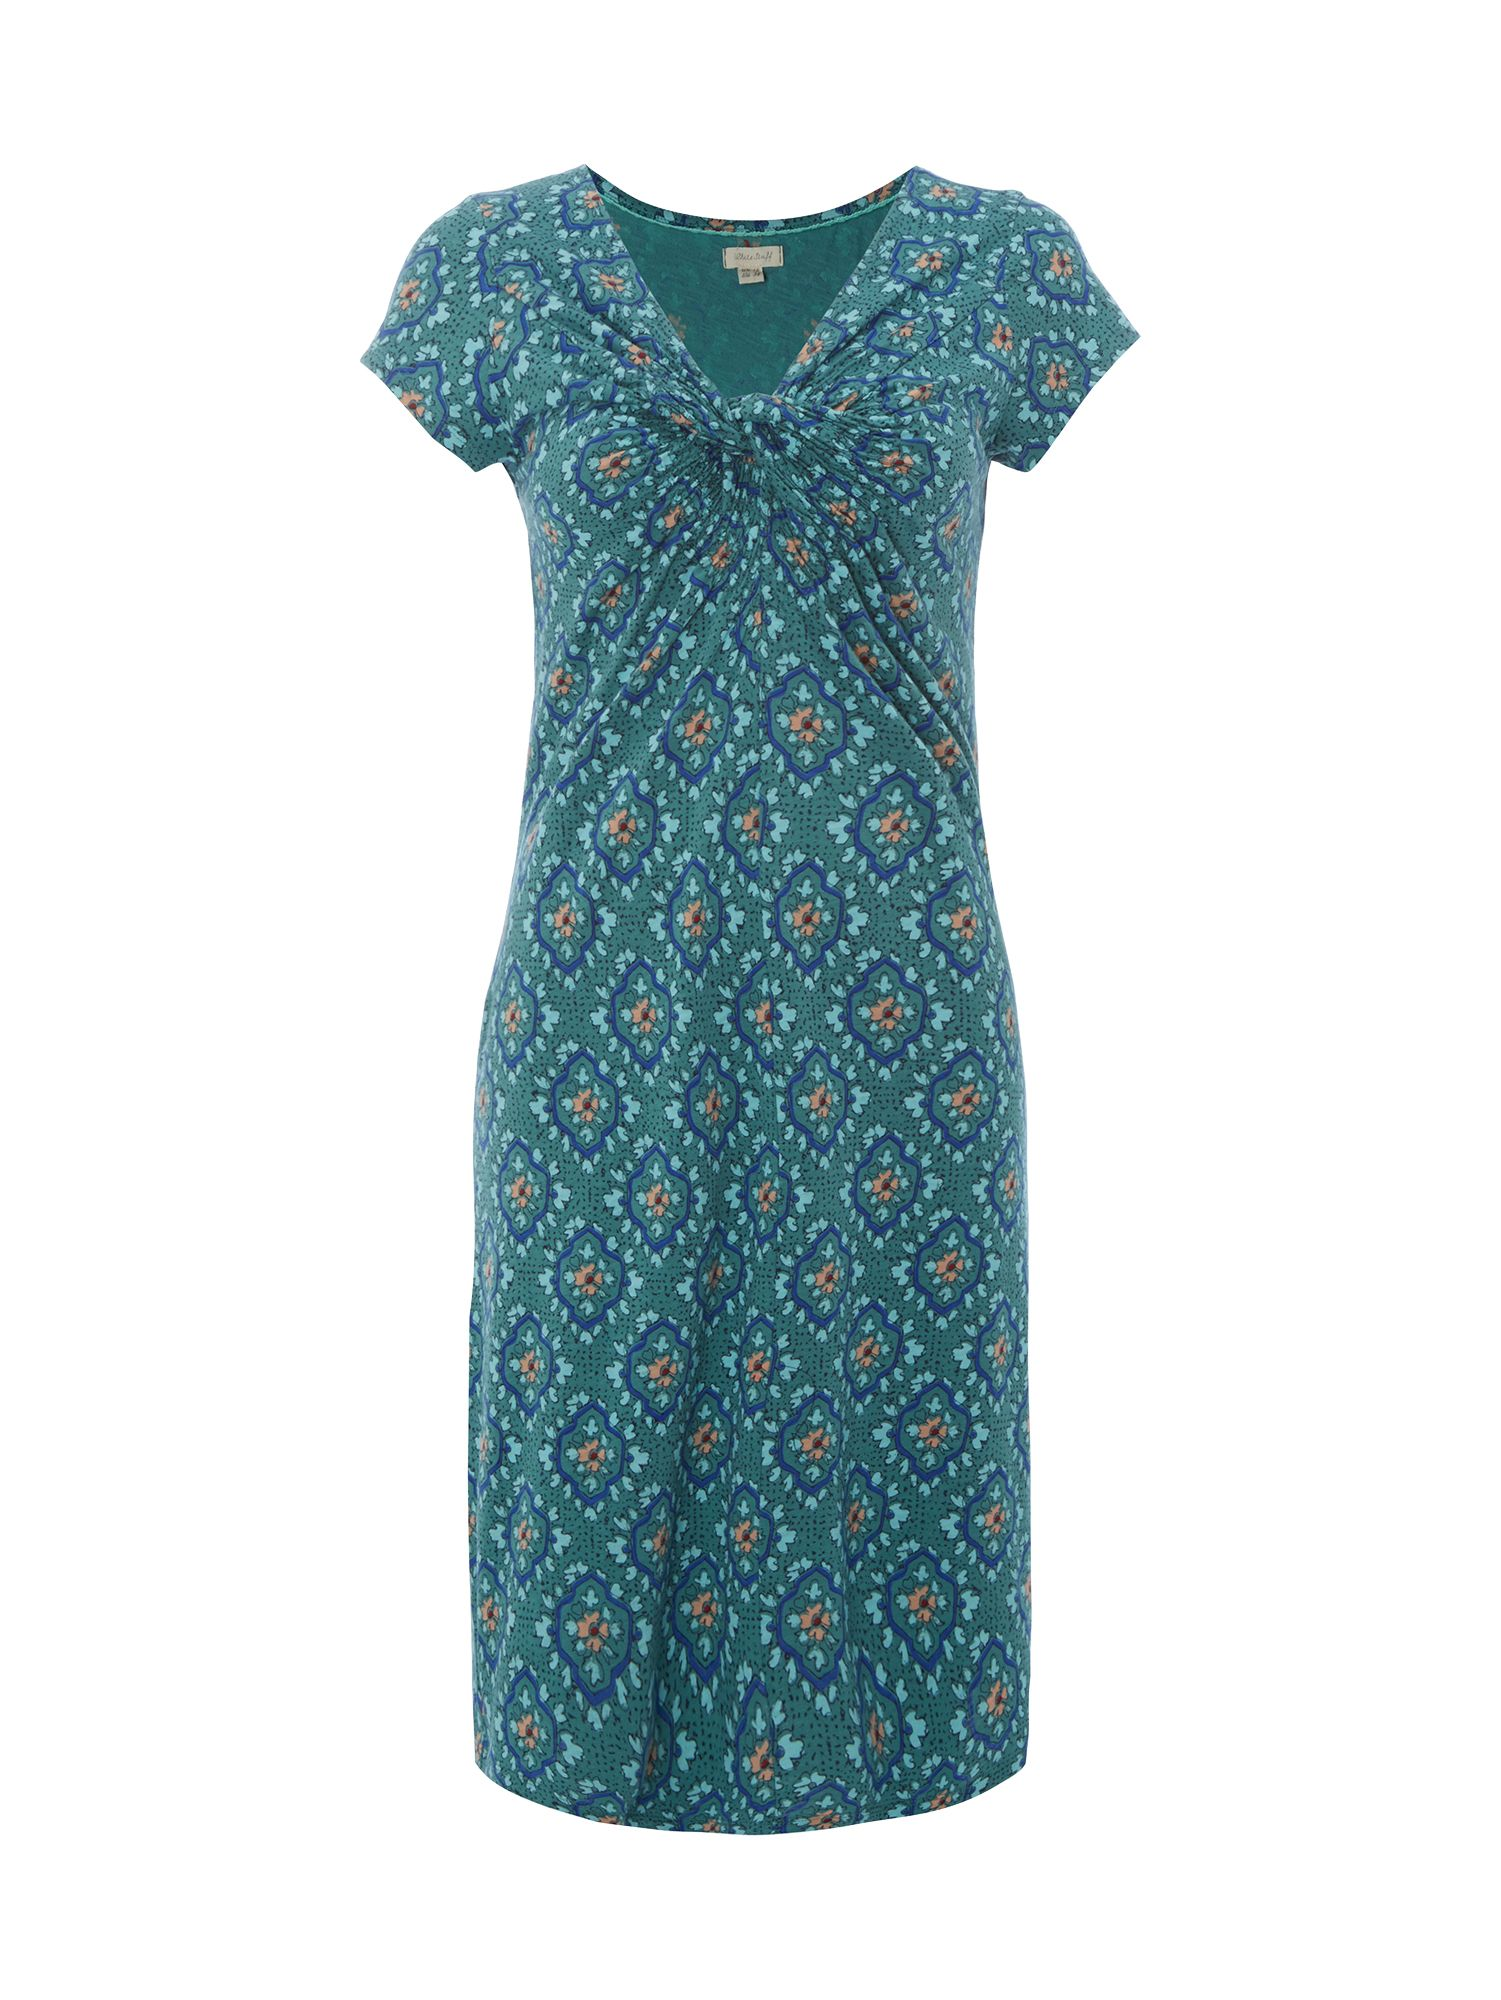 White Stuff Teardrop Tile Print Dress, Green